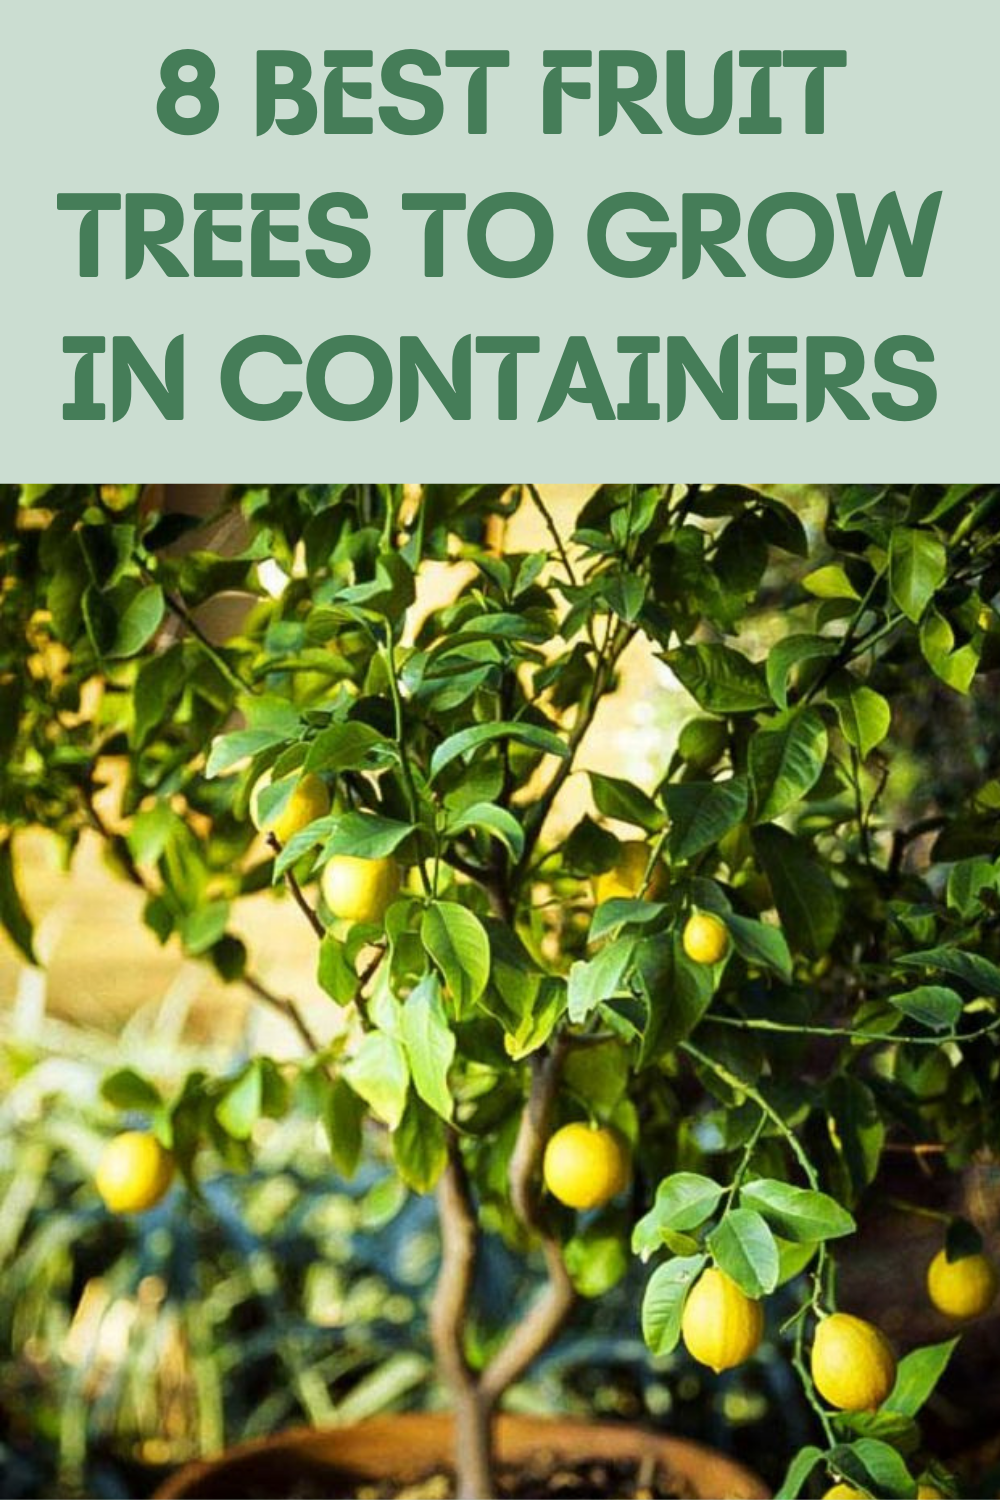 8 Best Fruit Trees To Grow In Containers Gardening Sun Best Fruits Garden Ideas To Make Garden Remedies